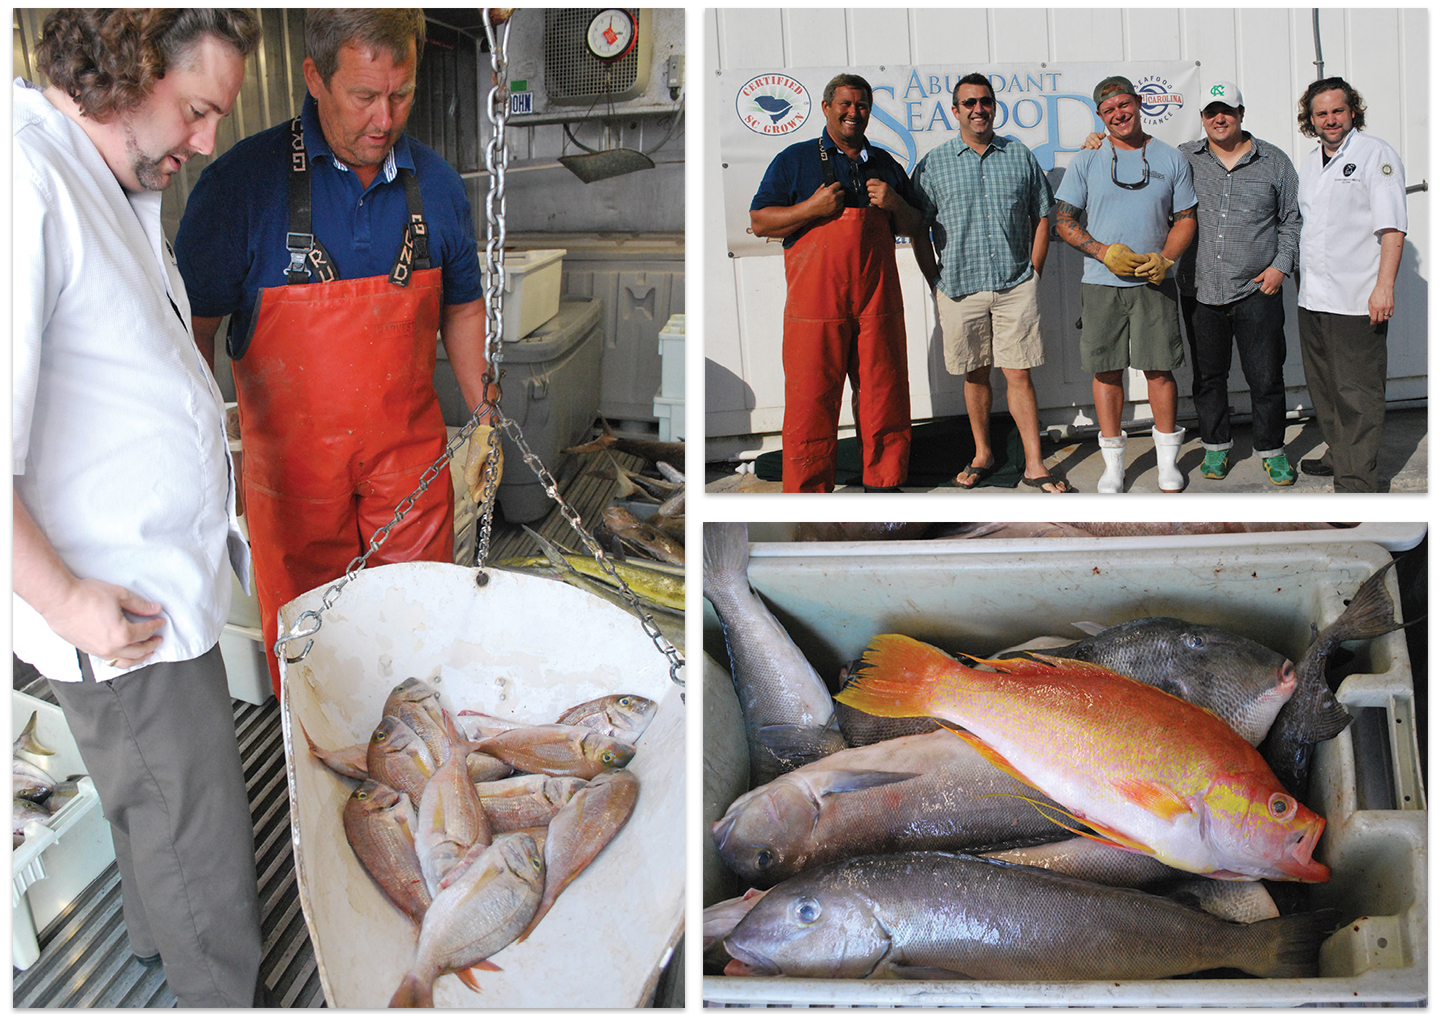 For about a decade, local chefs have vied for Mark's diverse and sustainably caught seafood. (Left to right) NICO chef-owner Nico Romo eyes some red porgy; Mark with The Grocery chef-owner Kevin Johnson, private chef Aaron Swersky, FIG's Jason Stanhope, and Romo